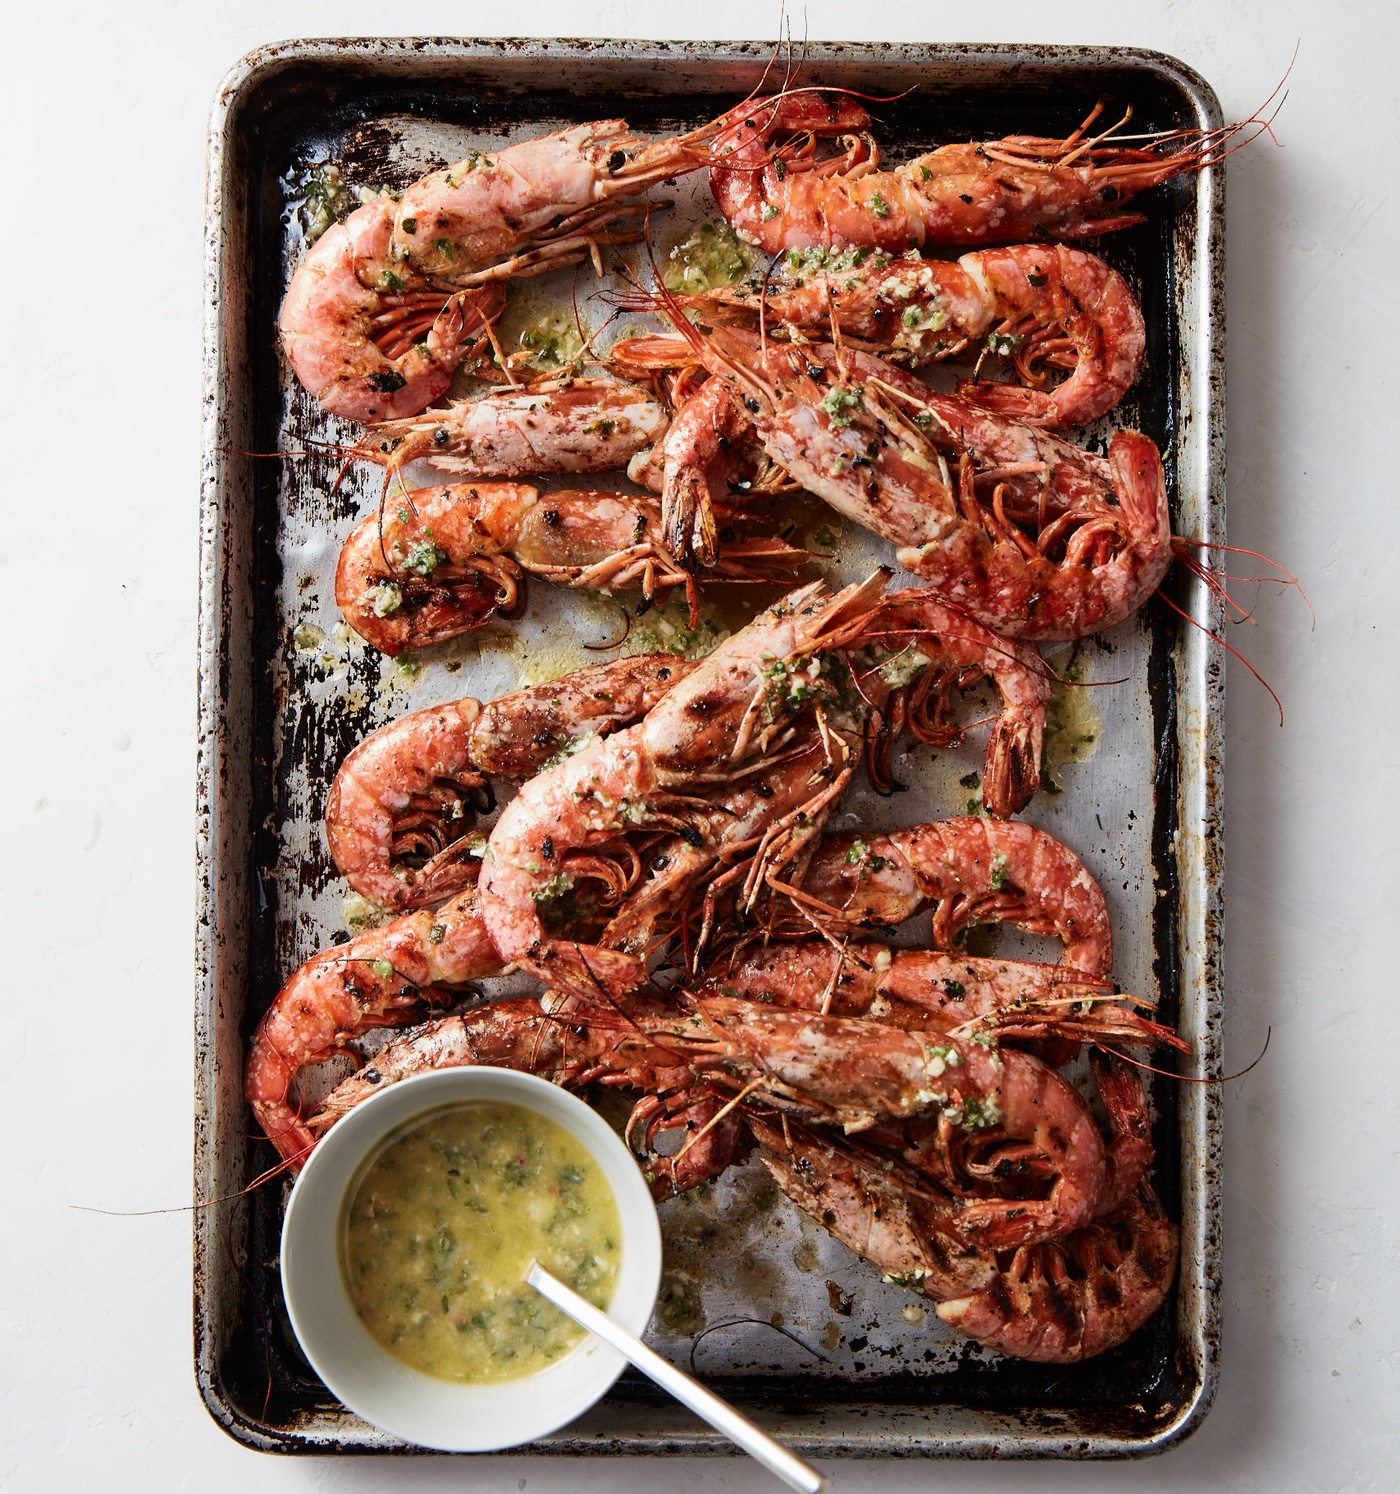 Grilled Shrimp With Chili, Lemon, And Oregano